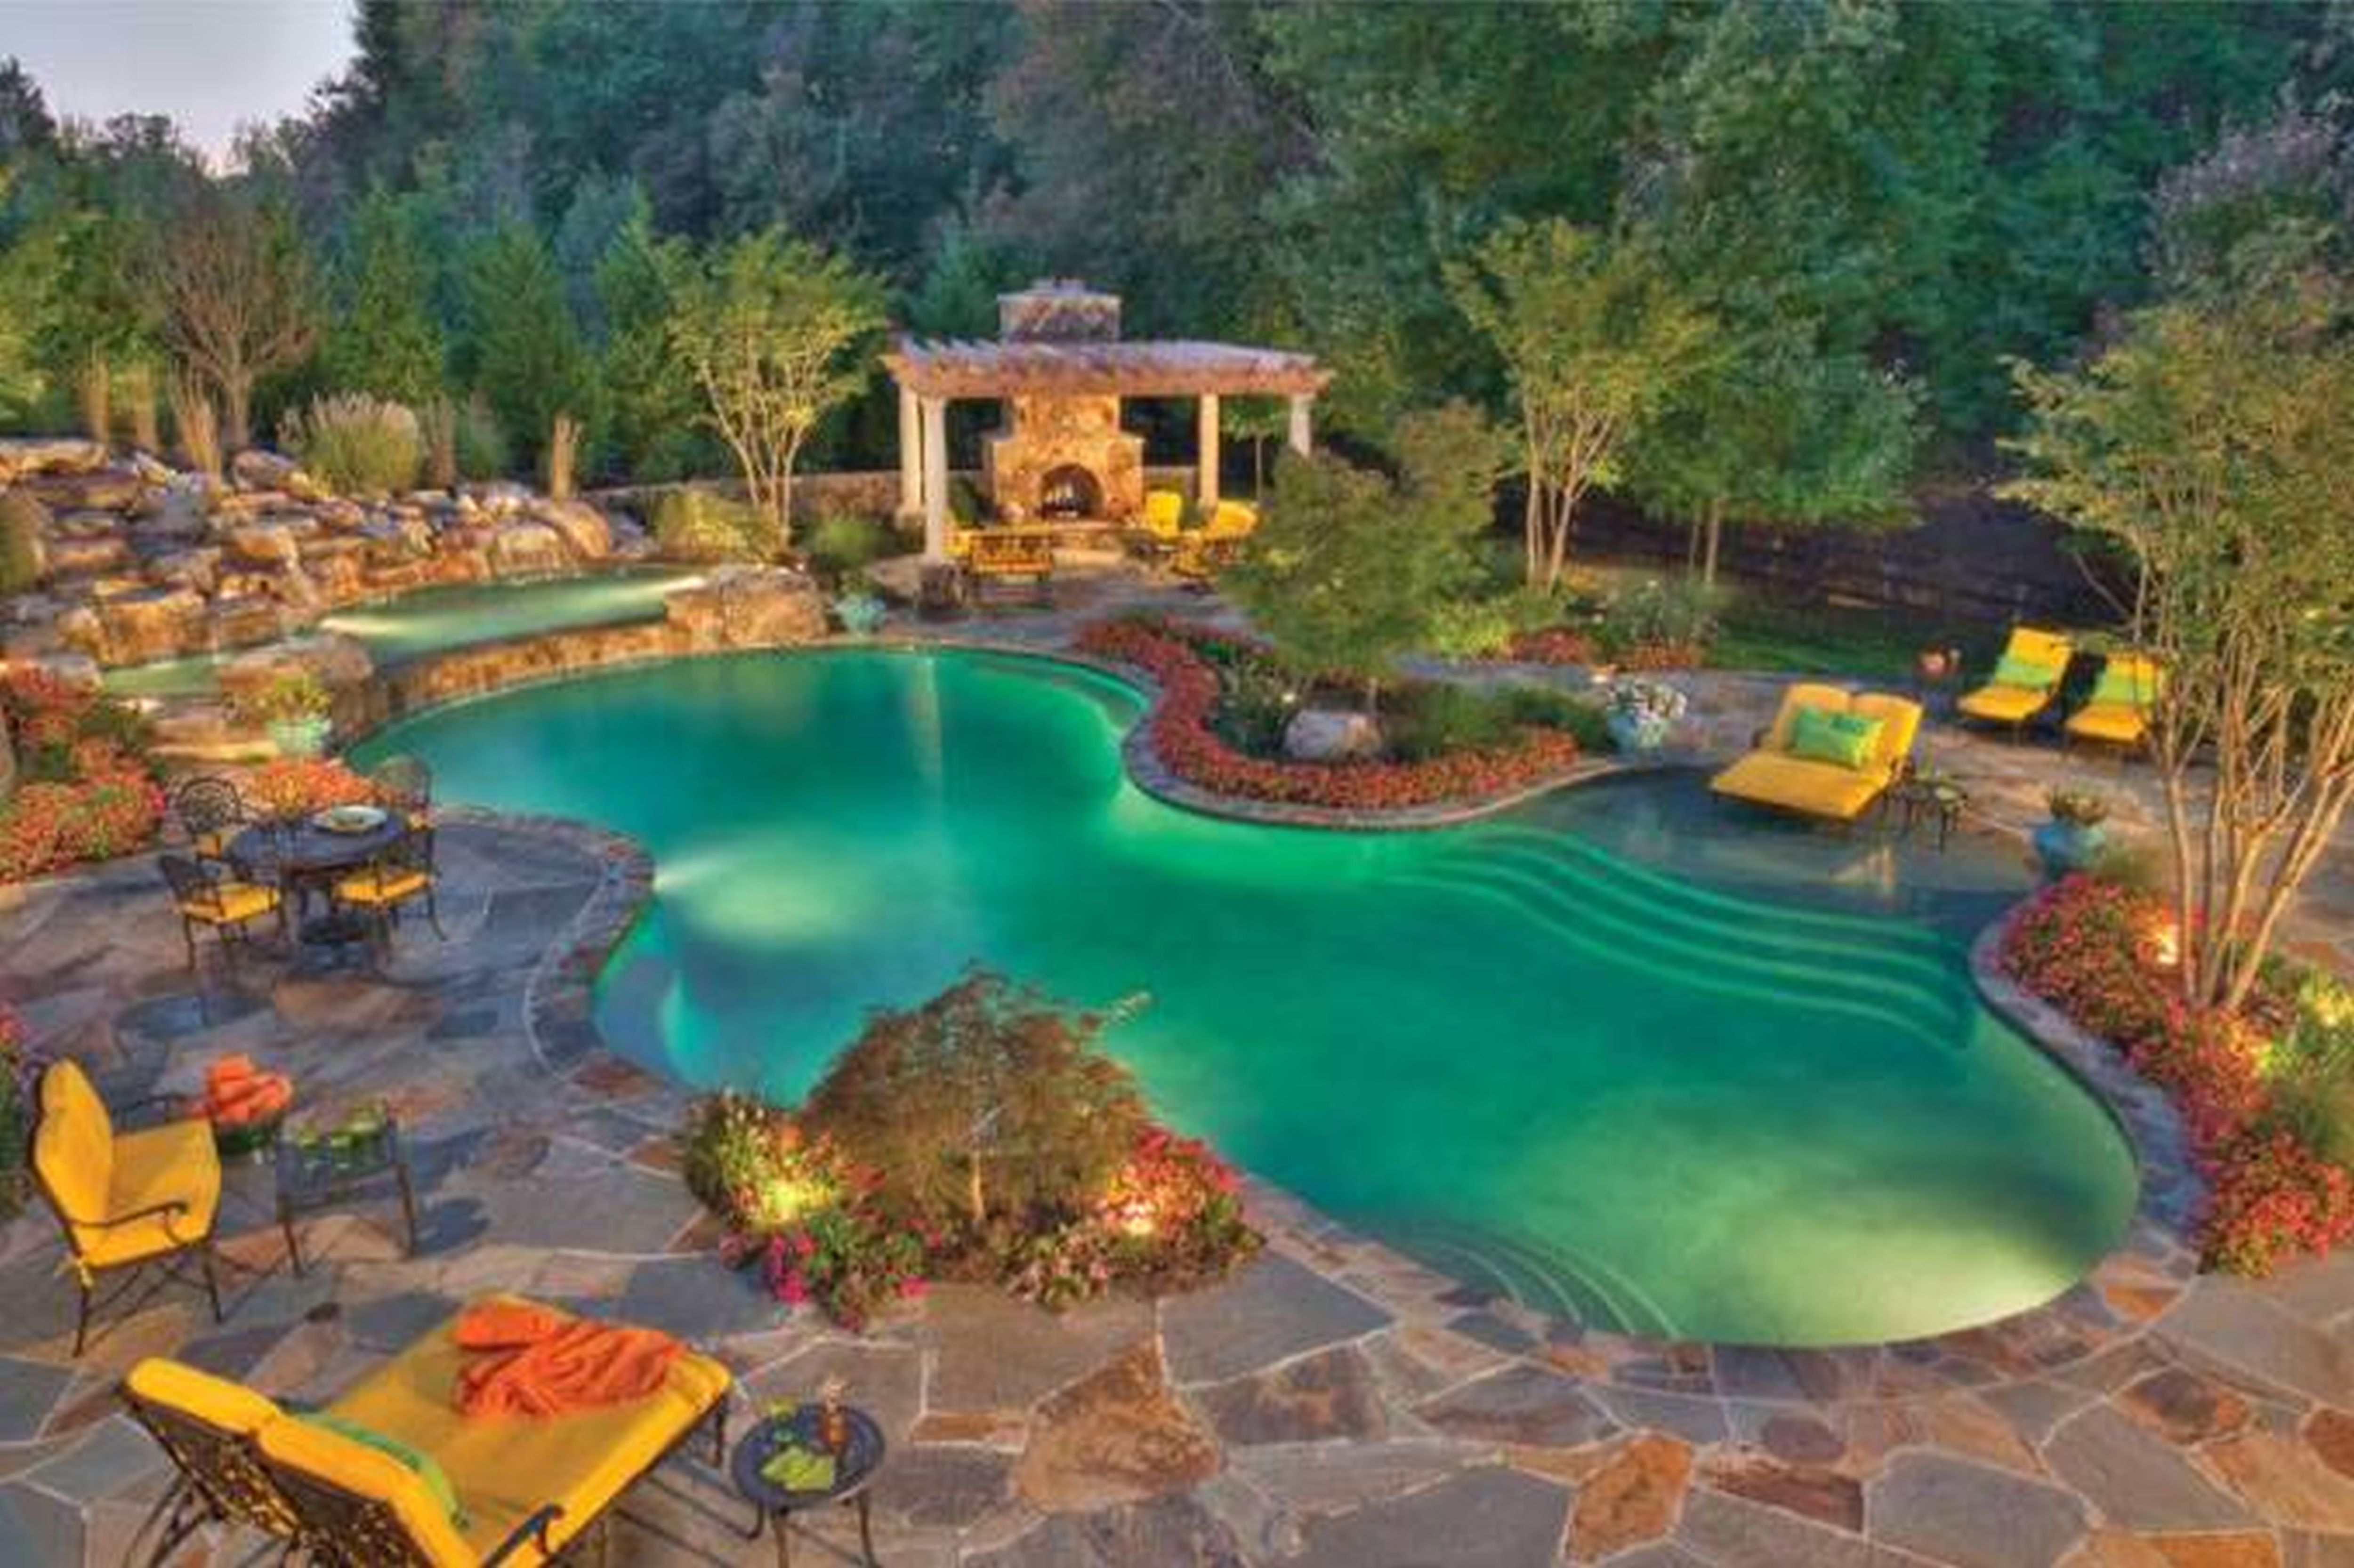 Beautiful Pool Outdoors Backyard Homes Exterior Design Landscaping Pools  Outdoor Pool Mansions Luxury Homes Back Yards